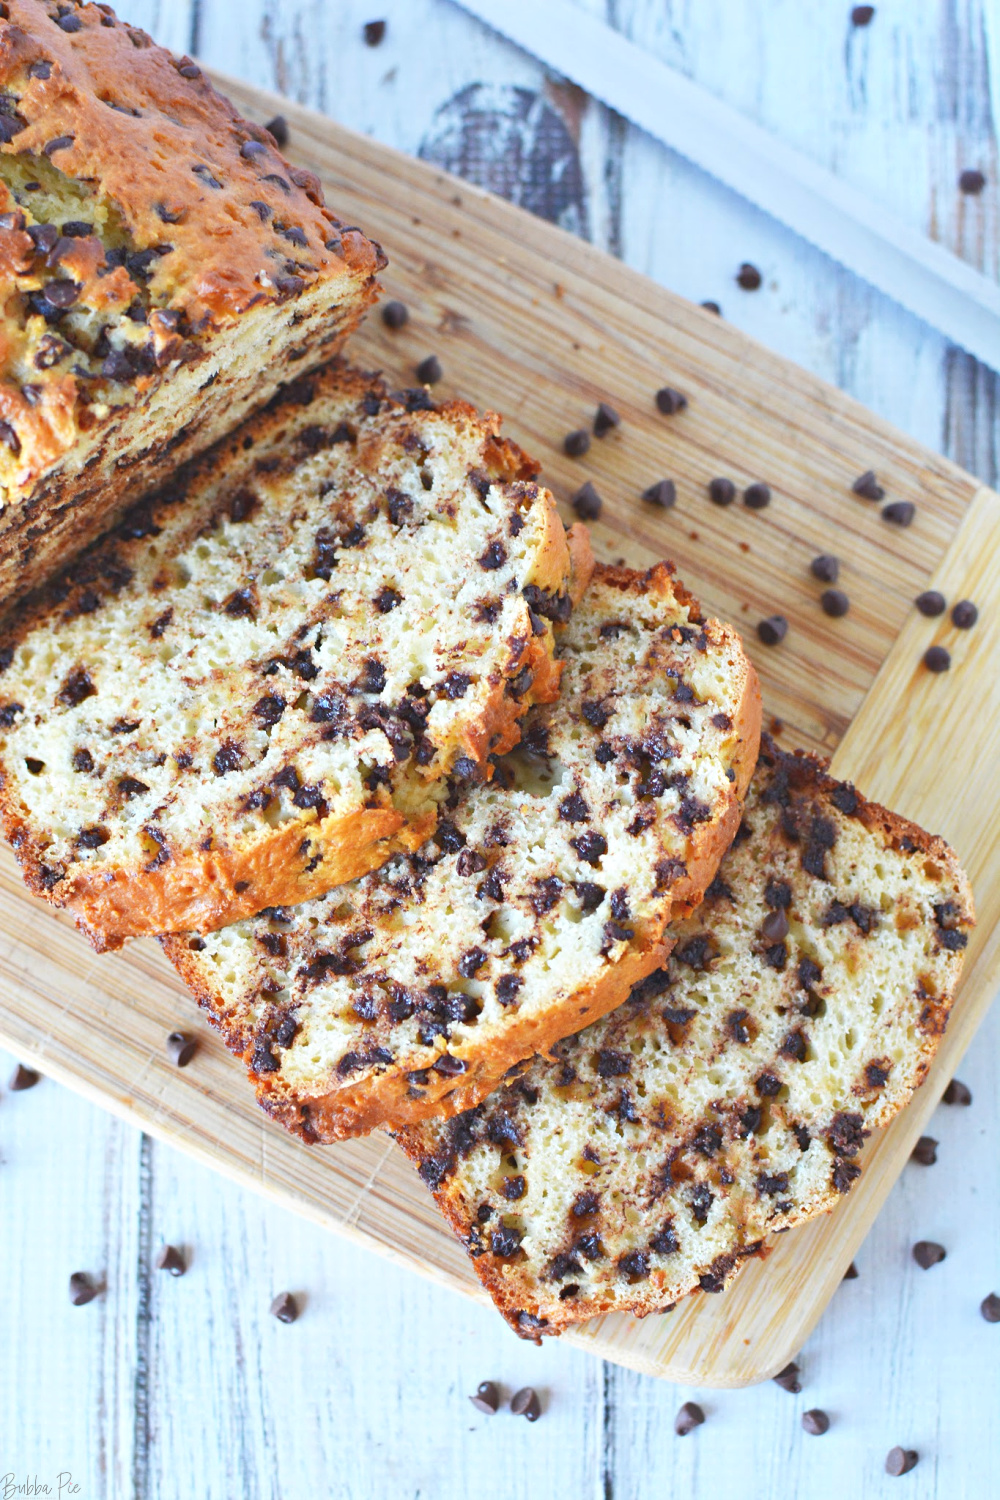 Chocolate Chip Bread Loaf is made with 6 simple ingredients.